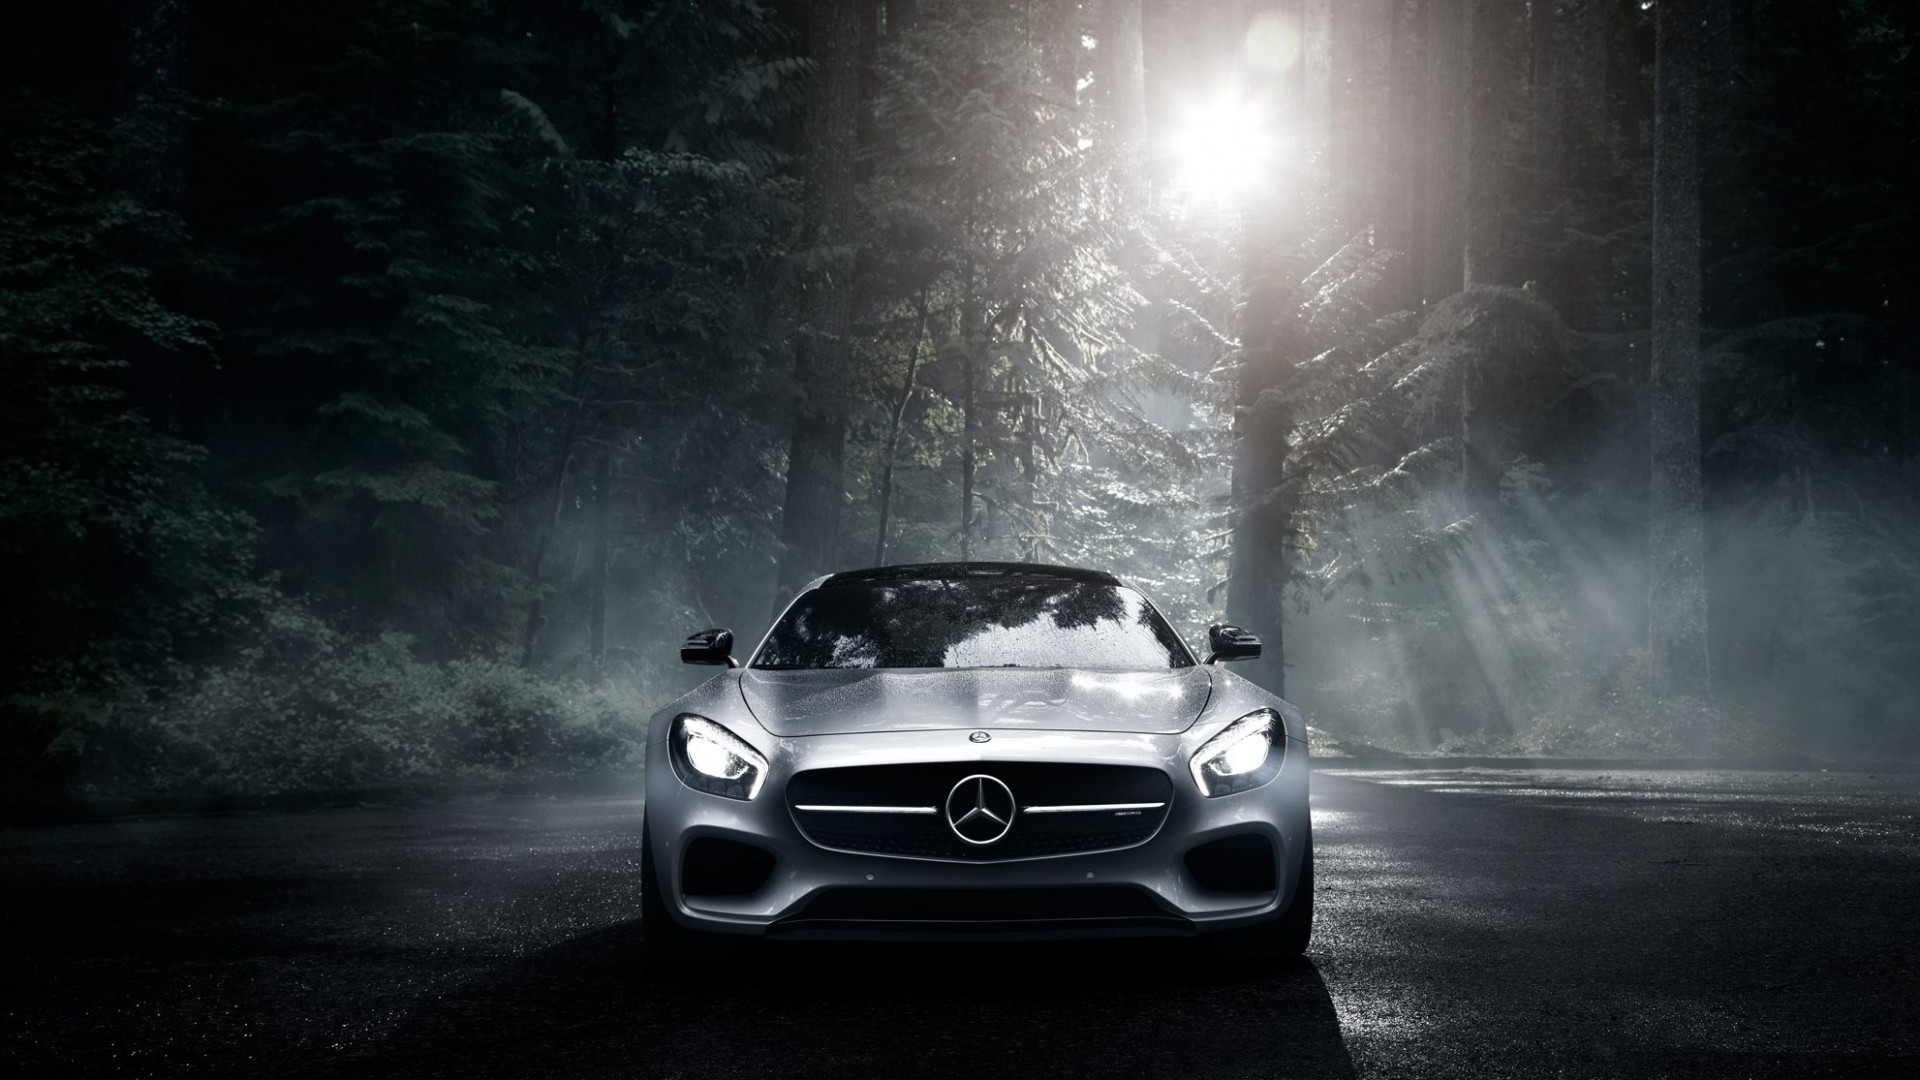 Full Hd 1080P Cars Wallpapers, Desktop Backgrounds Hd, Pictures throughout  Full Hd 1080P Desktop